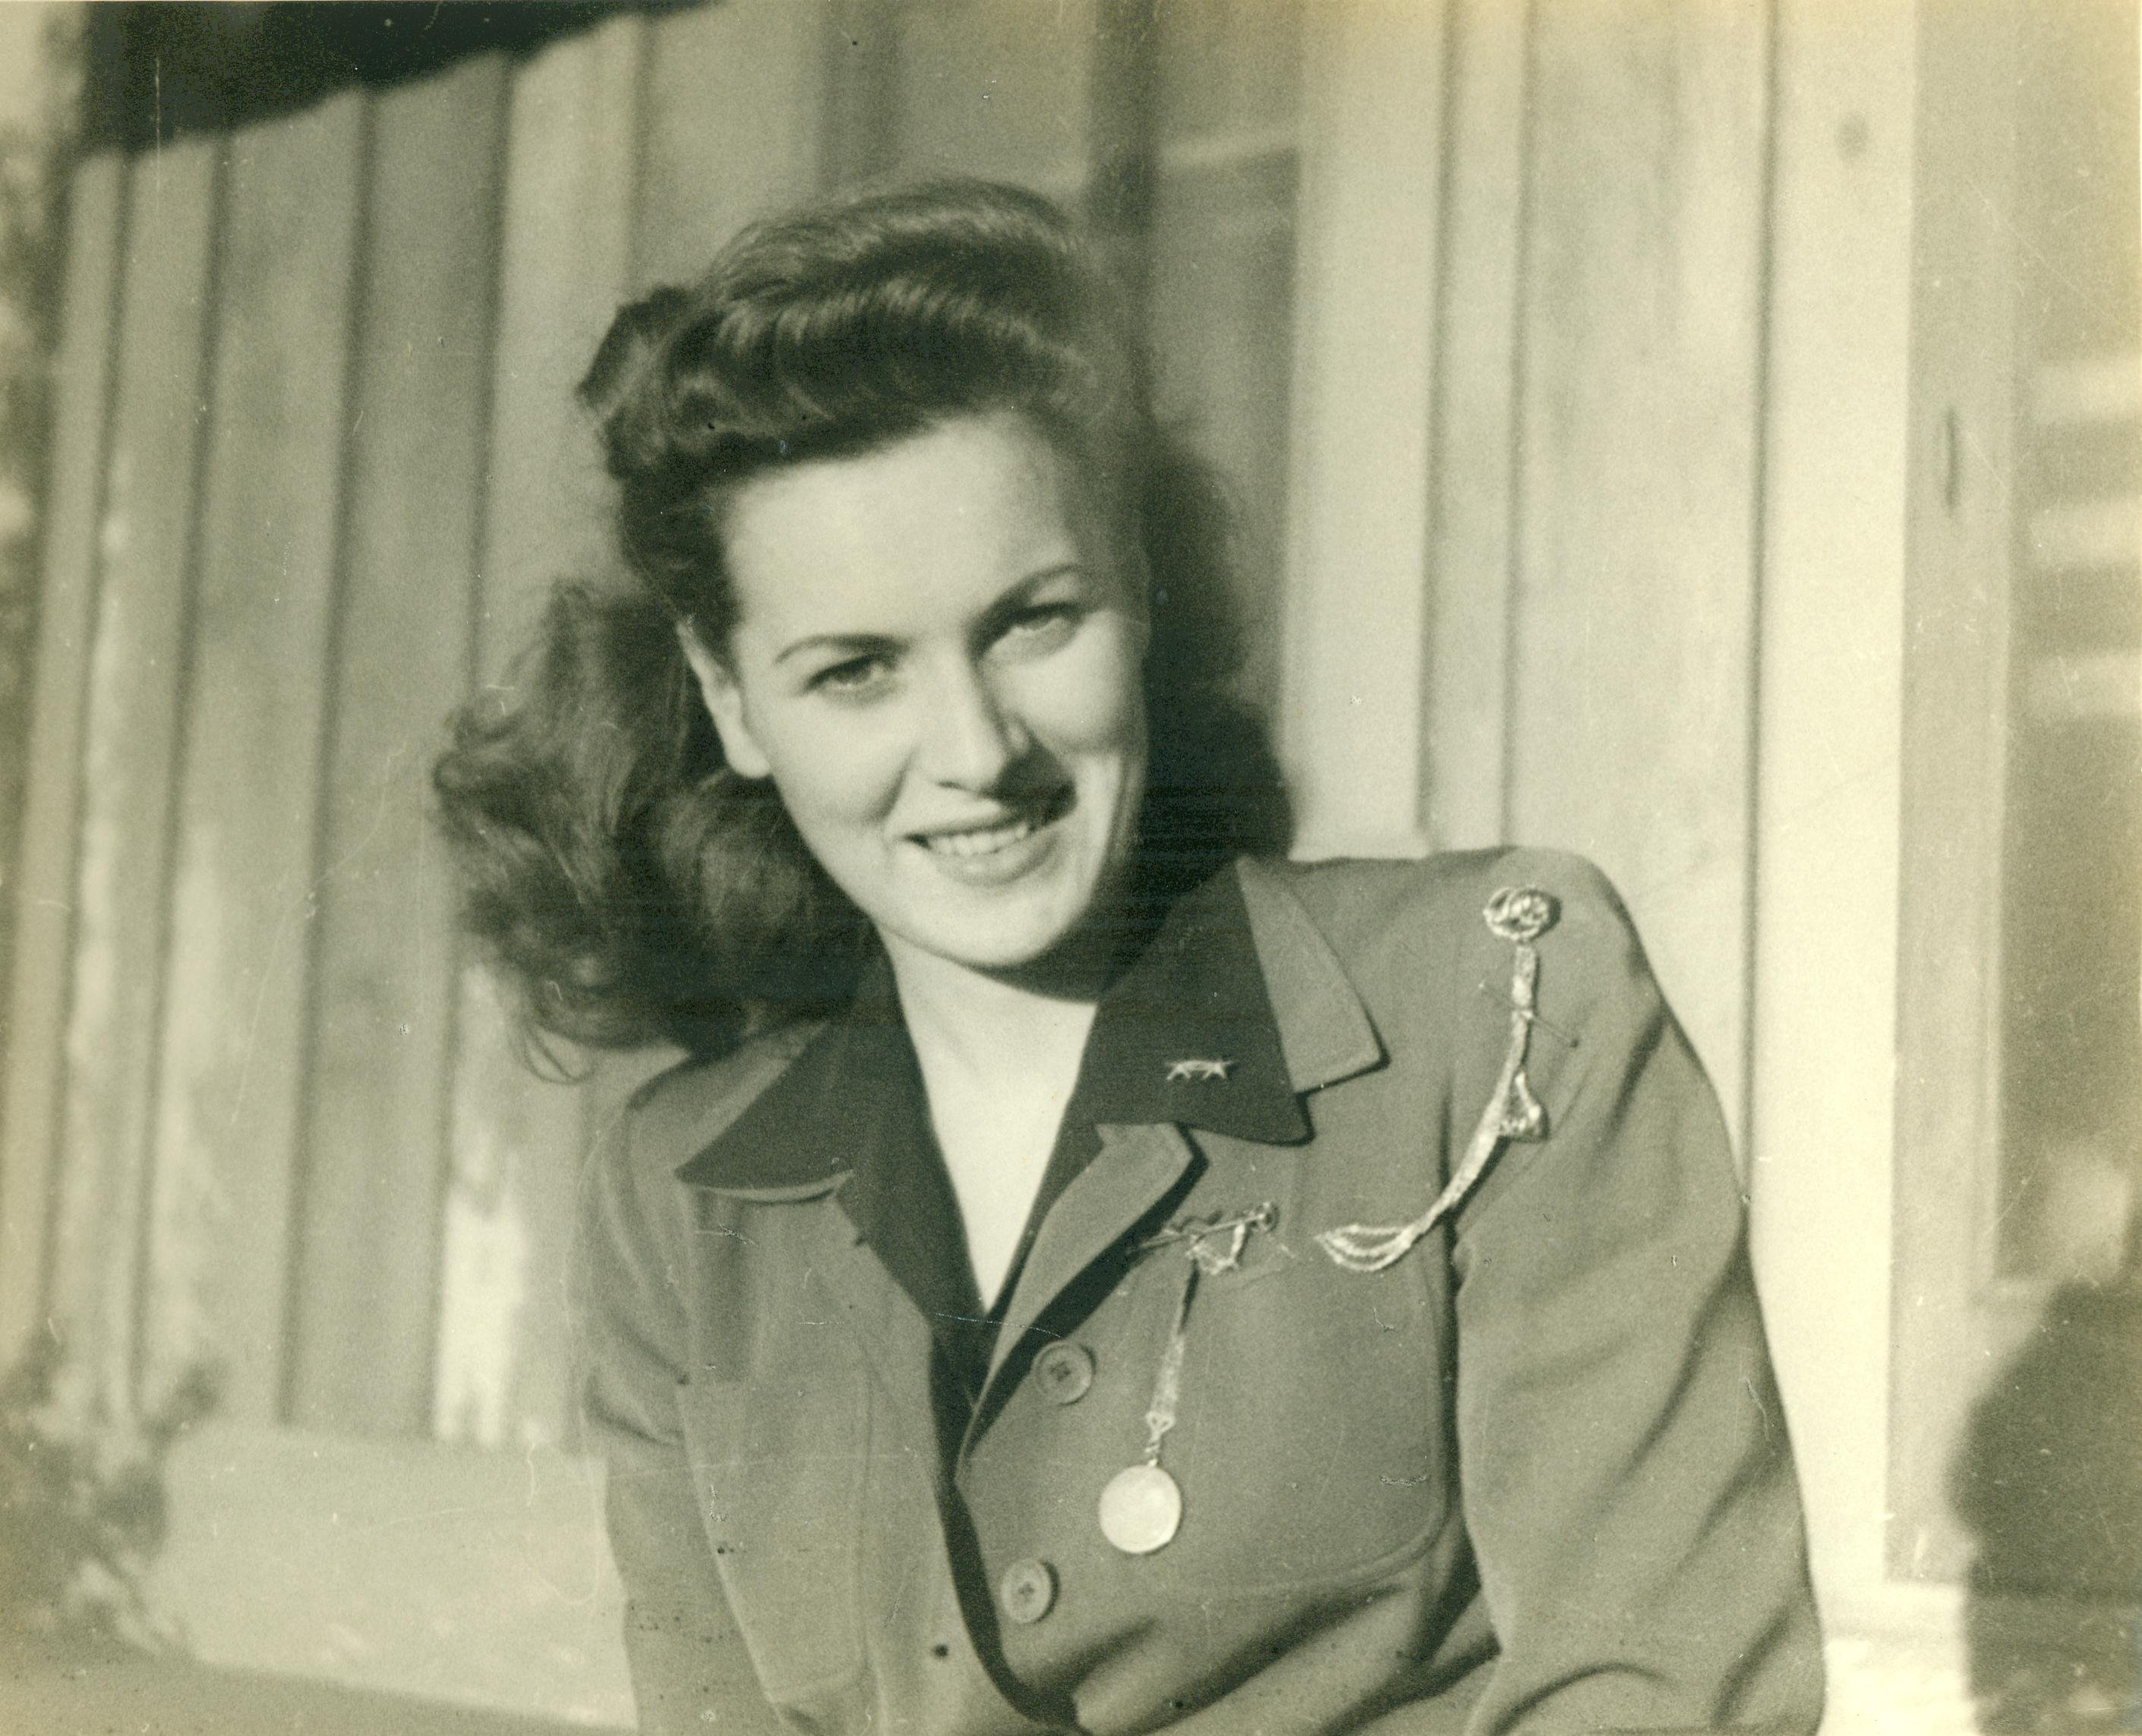 Maureen O'Hara at Camp Pendleton, on November 1945. | Photo:  USMC Archives  QS:22306028699), CC BY 2.0, Wikimedia Commons